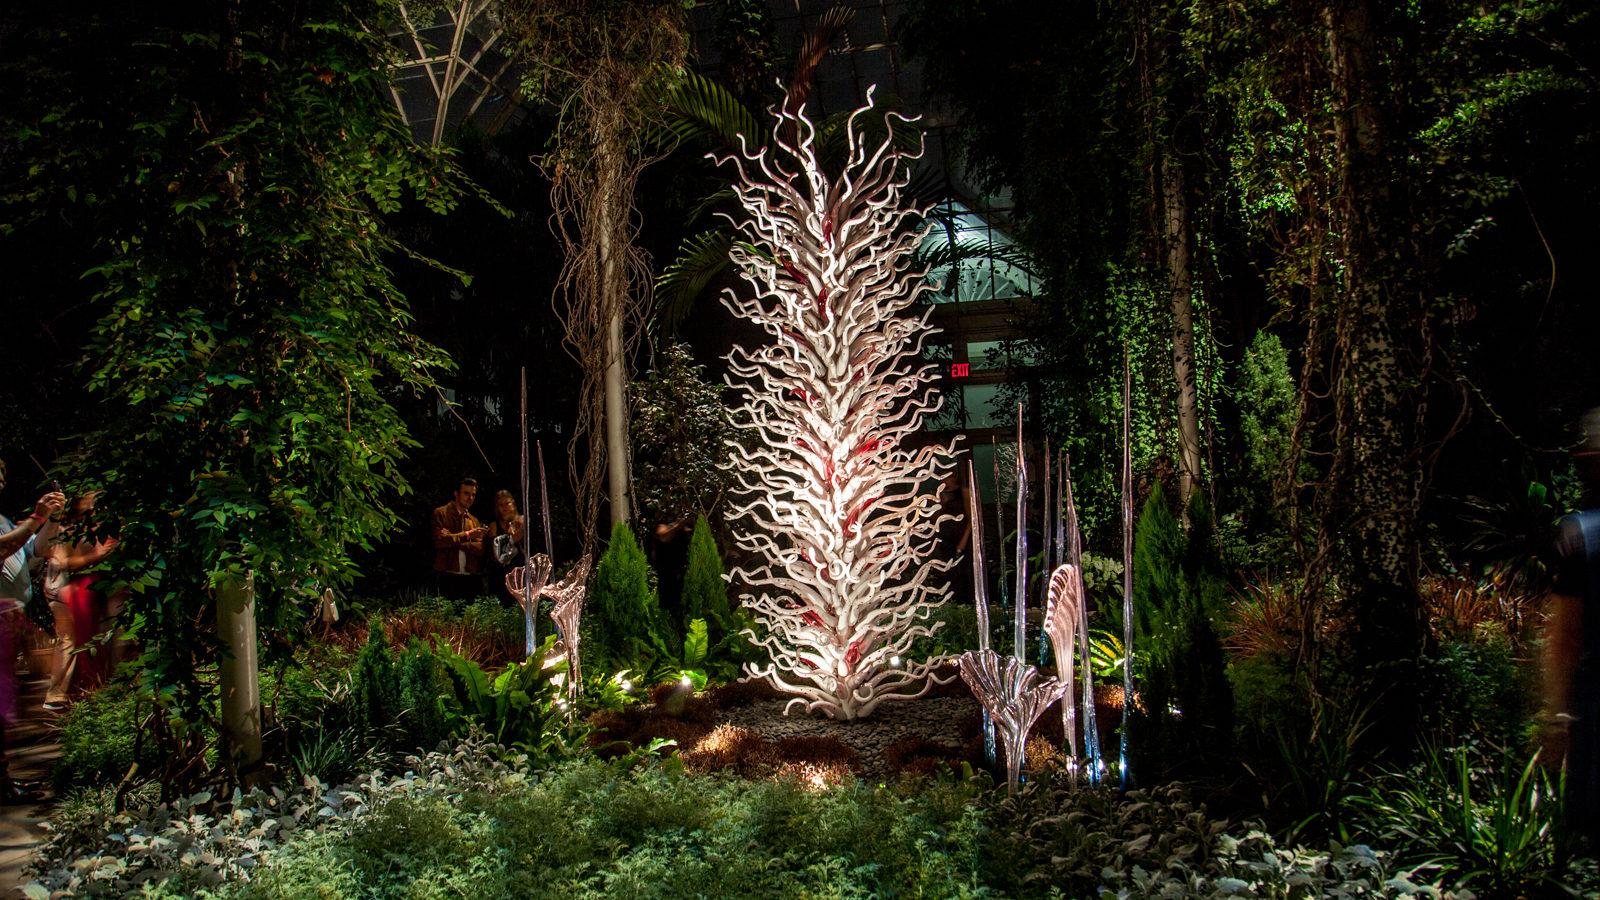 The Glass Sculptures Of Chihuly Nights Welum